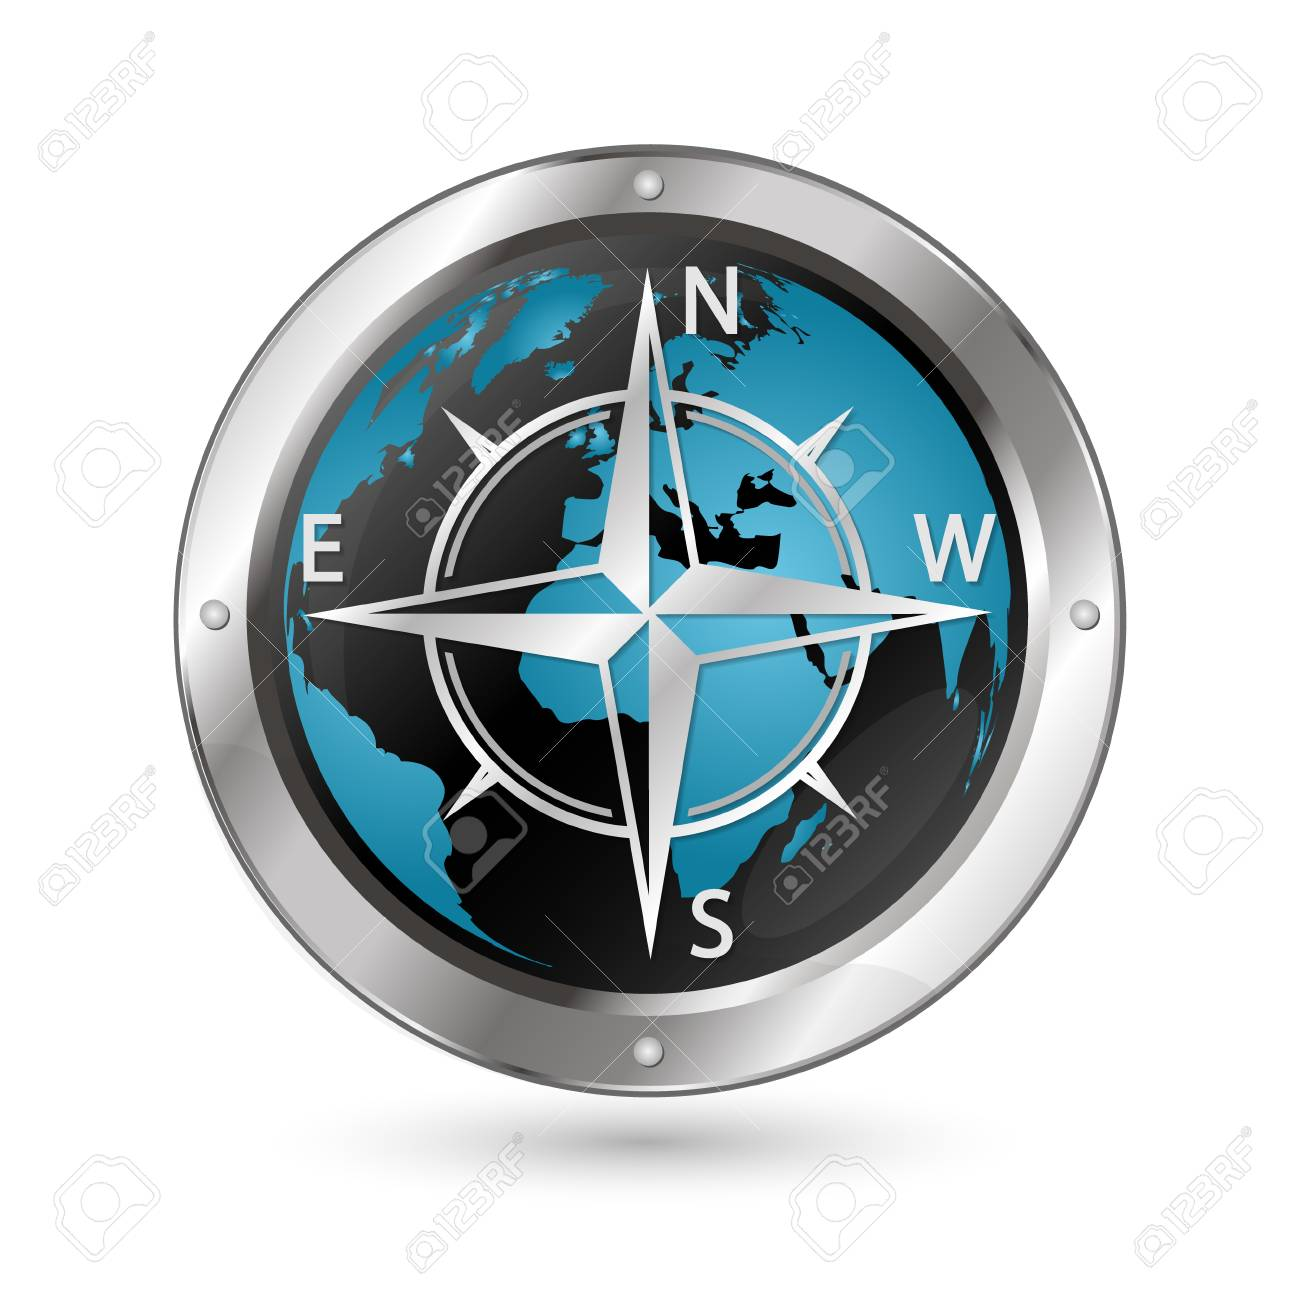 The Symbol Of The Wind Rose Against The Background Of The Globe